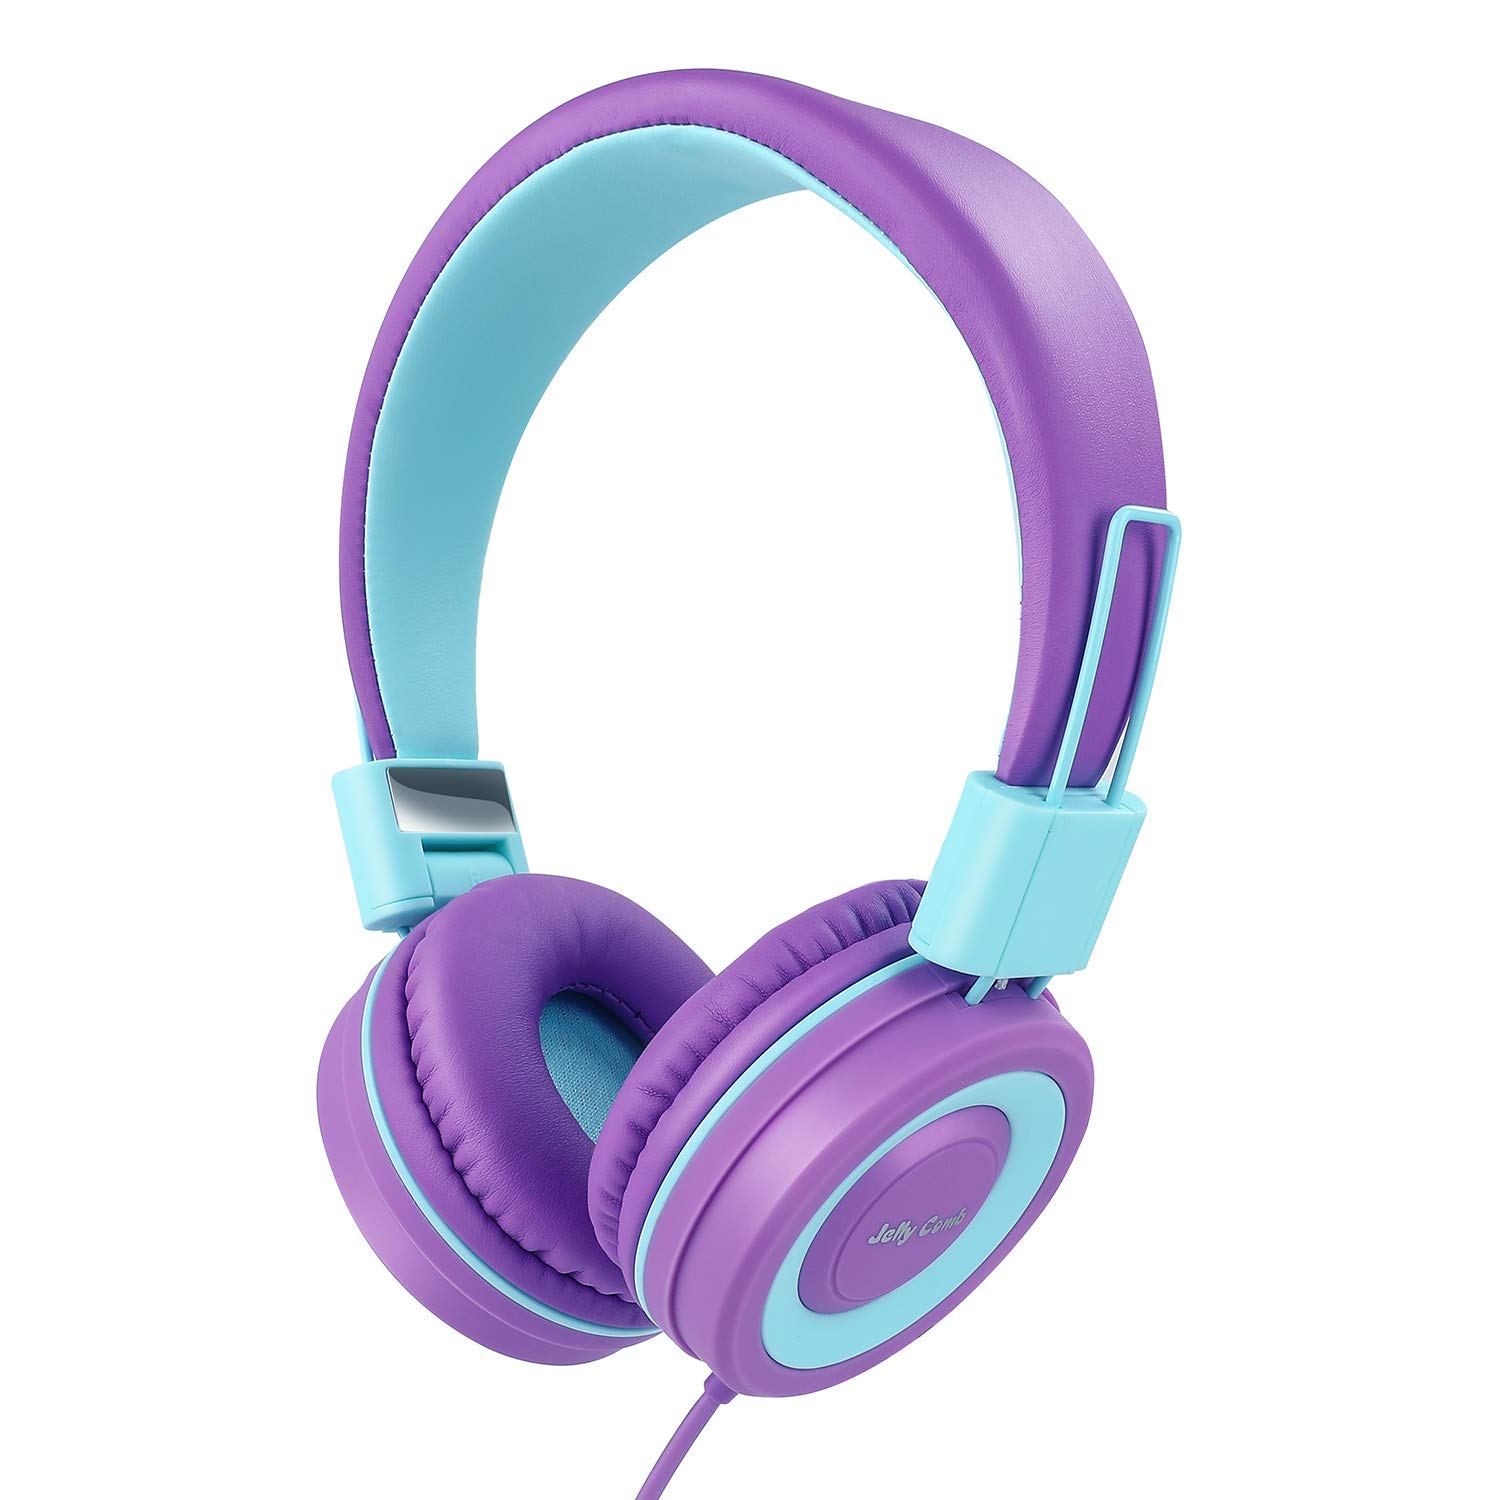 On Ear Headphones with Mic, Jelly Comb Foldable Corded Headphones Wired Headsets with Microphone, Volume Control for Cell Phone, Tablet, PC, Laptop, MP3/4, Video Game ( Purple & Blue )